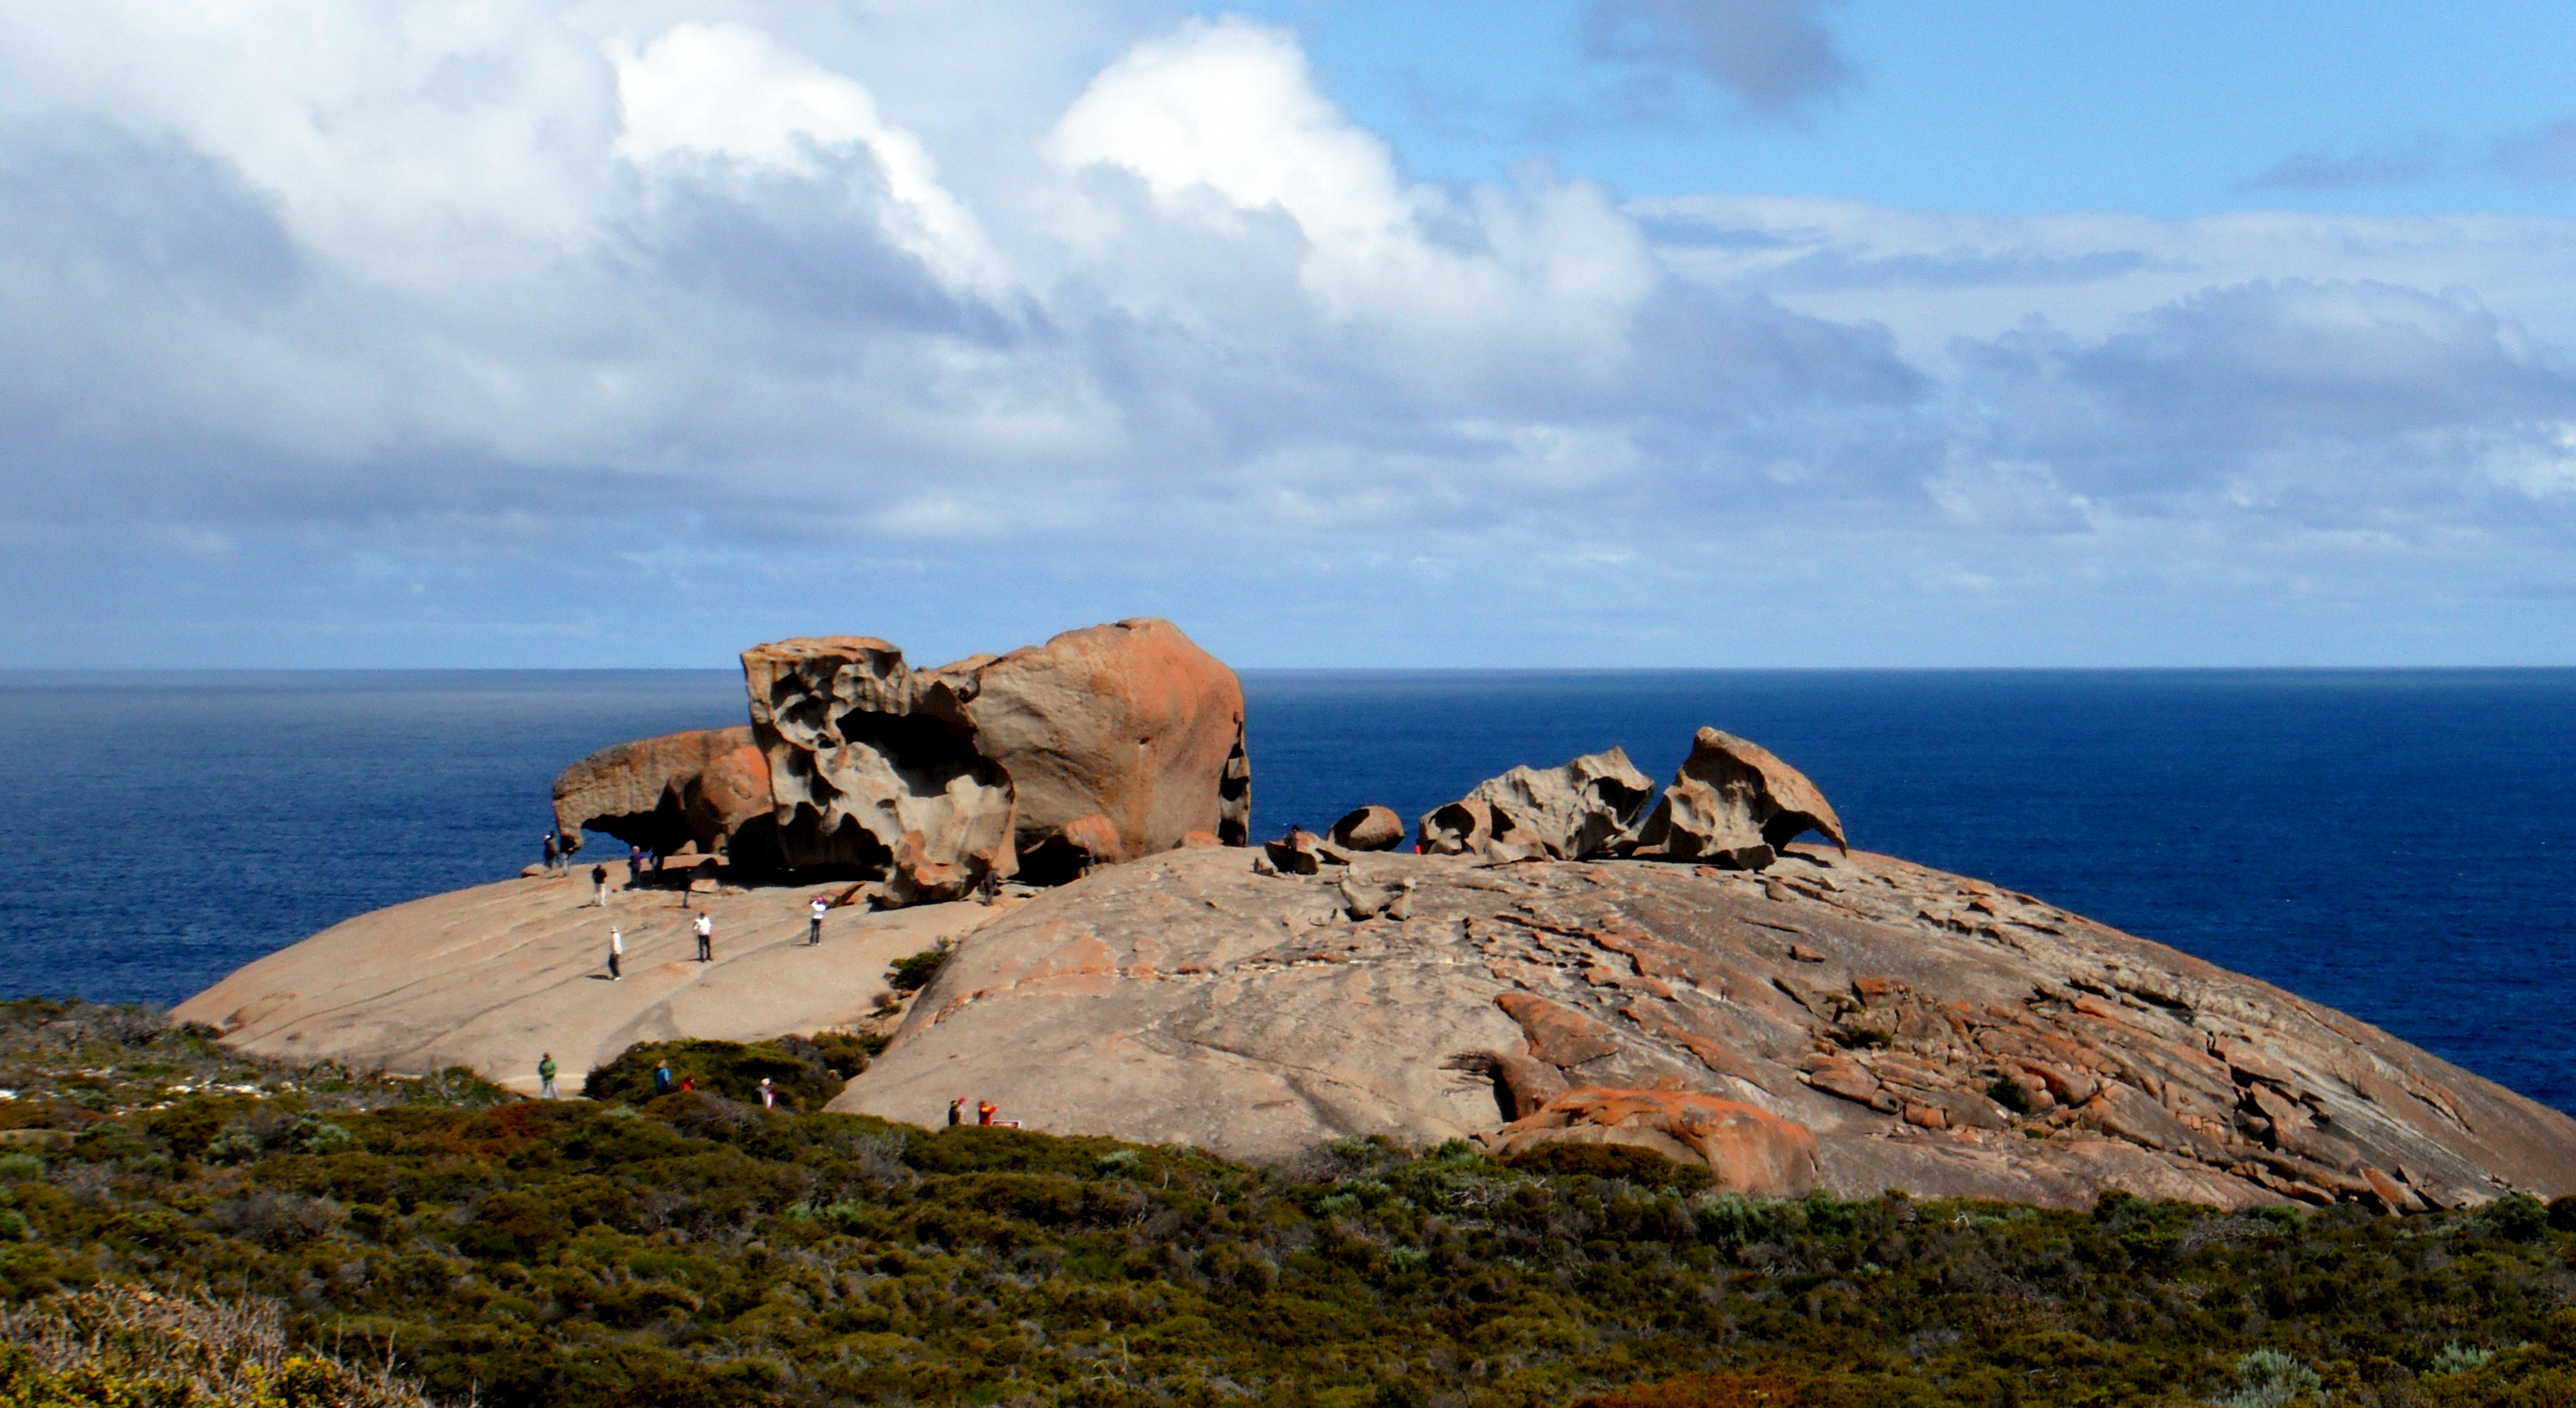 Kangaroo Island Australia  City new picture : Description Remarkable Rocks on Kangaroo Island, South Australia